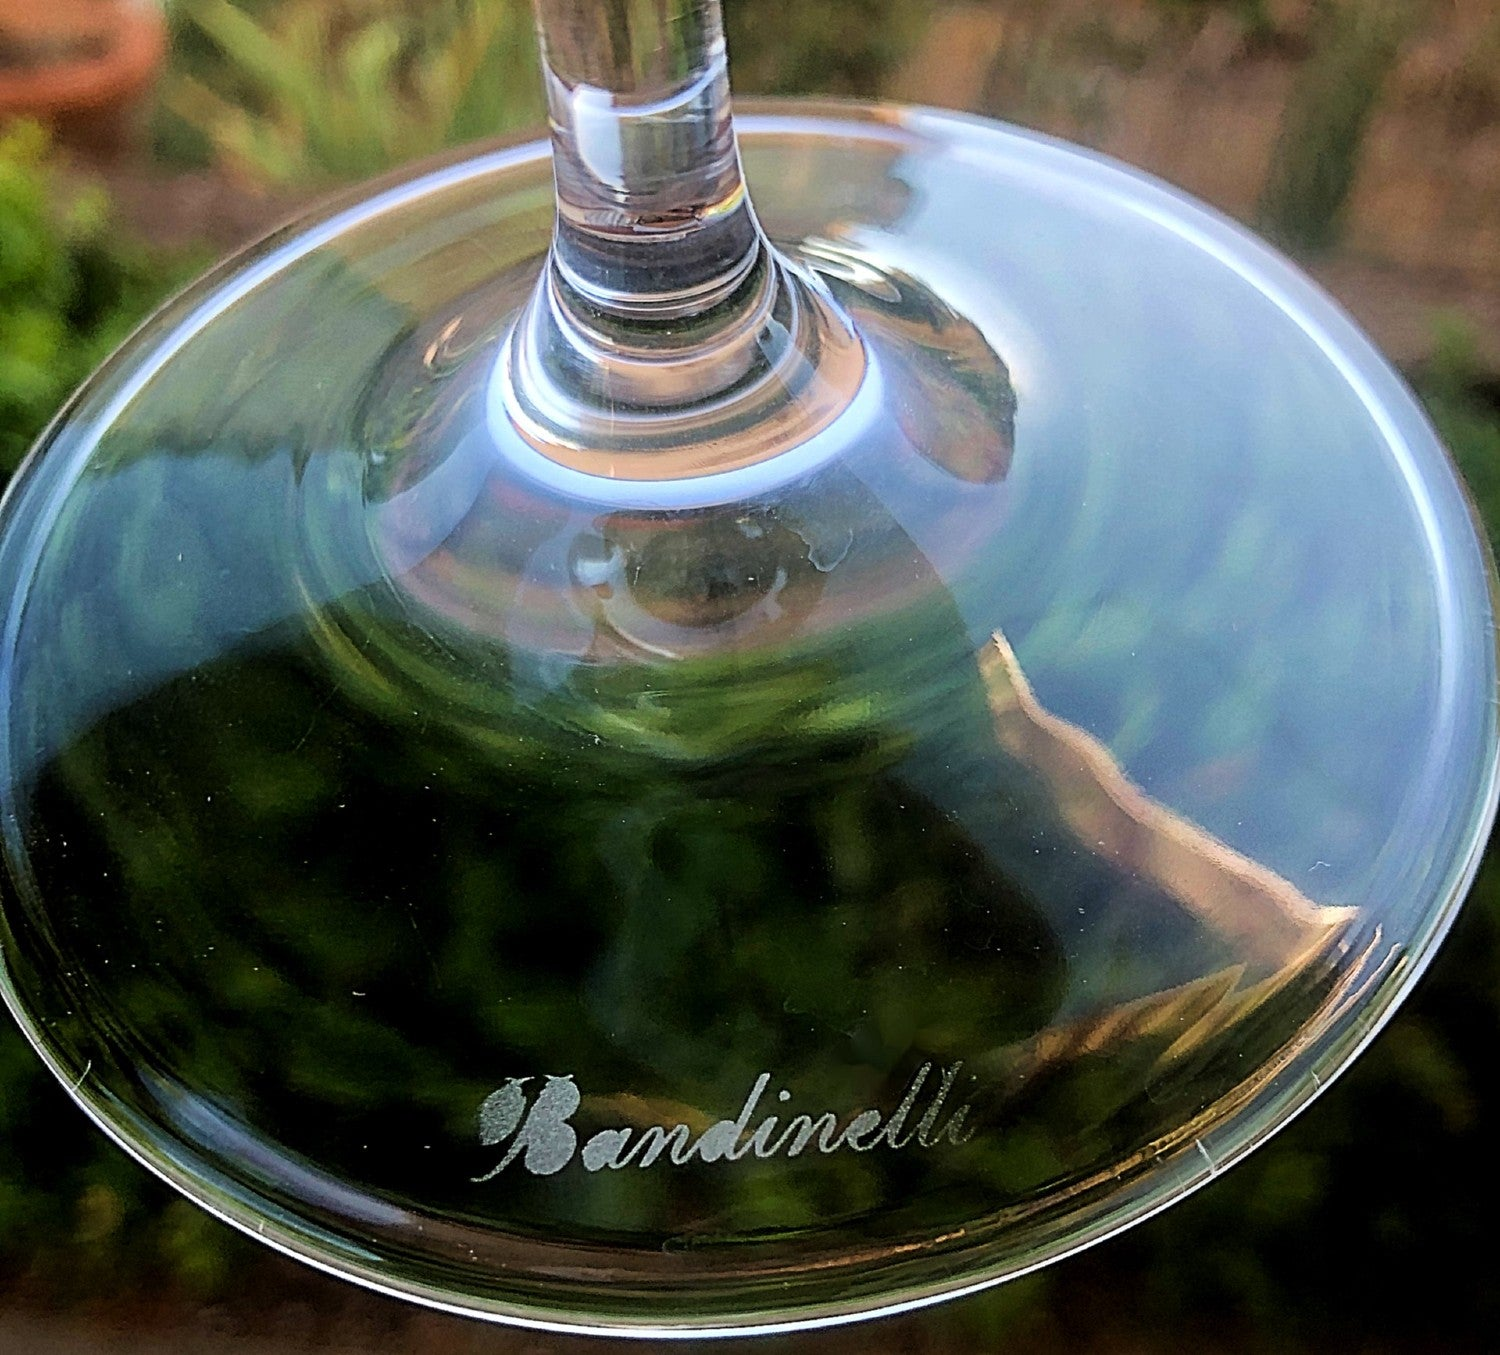 Brunello Wine Glass 1 Grape - Hand Engraved Crystals